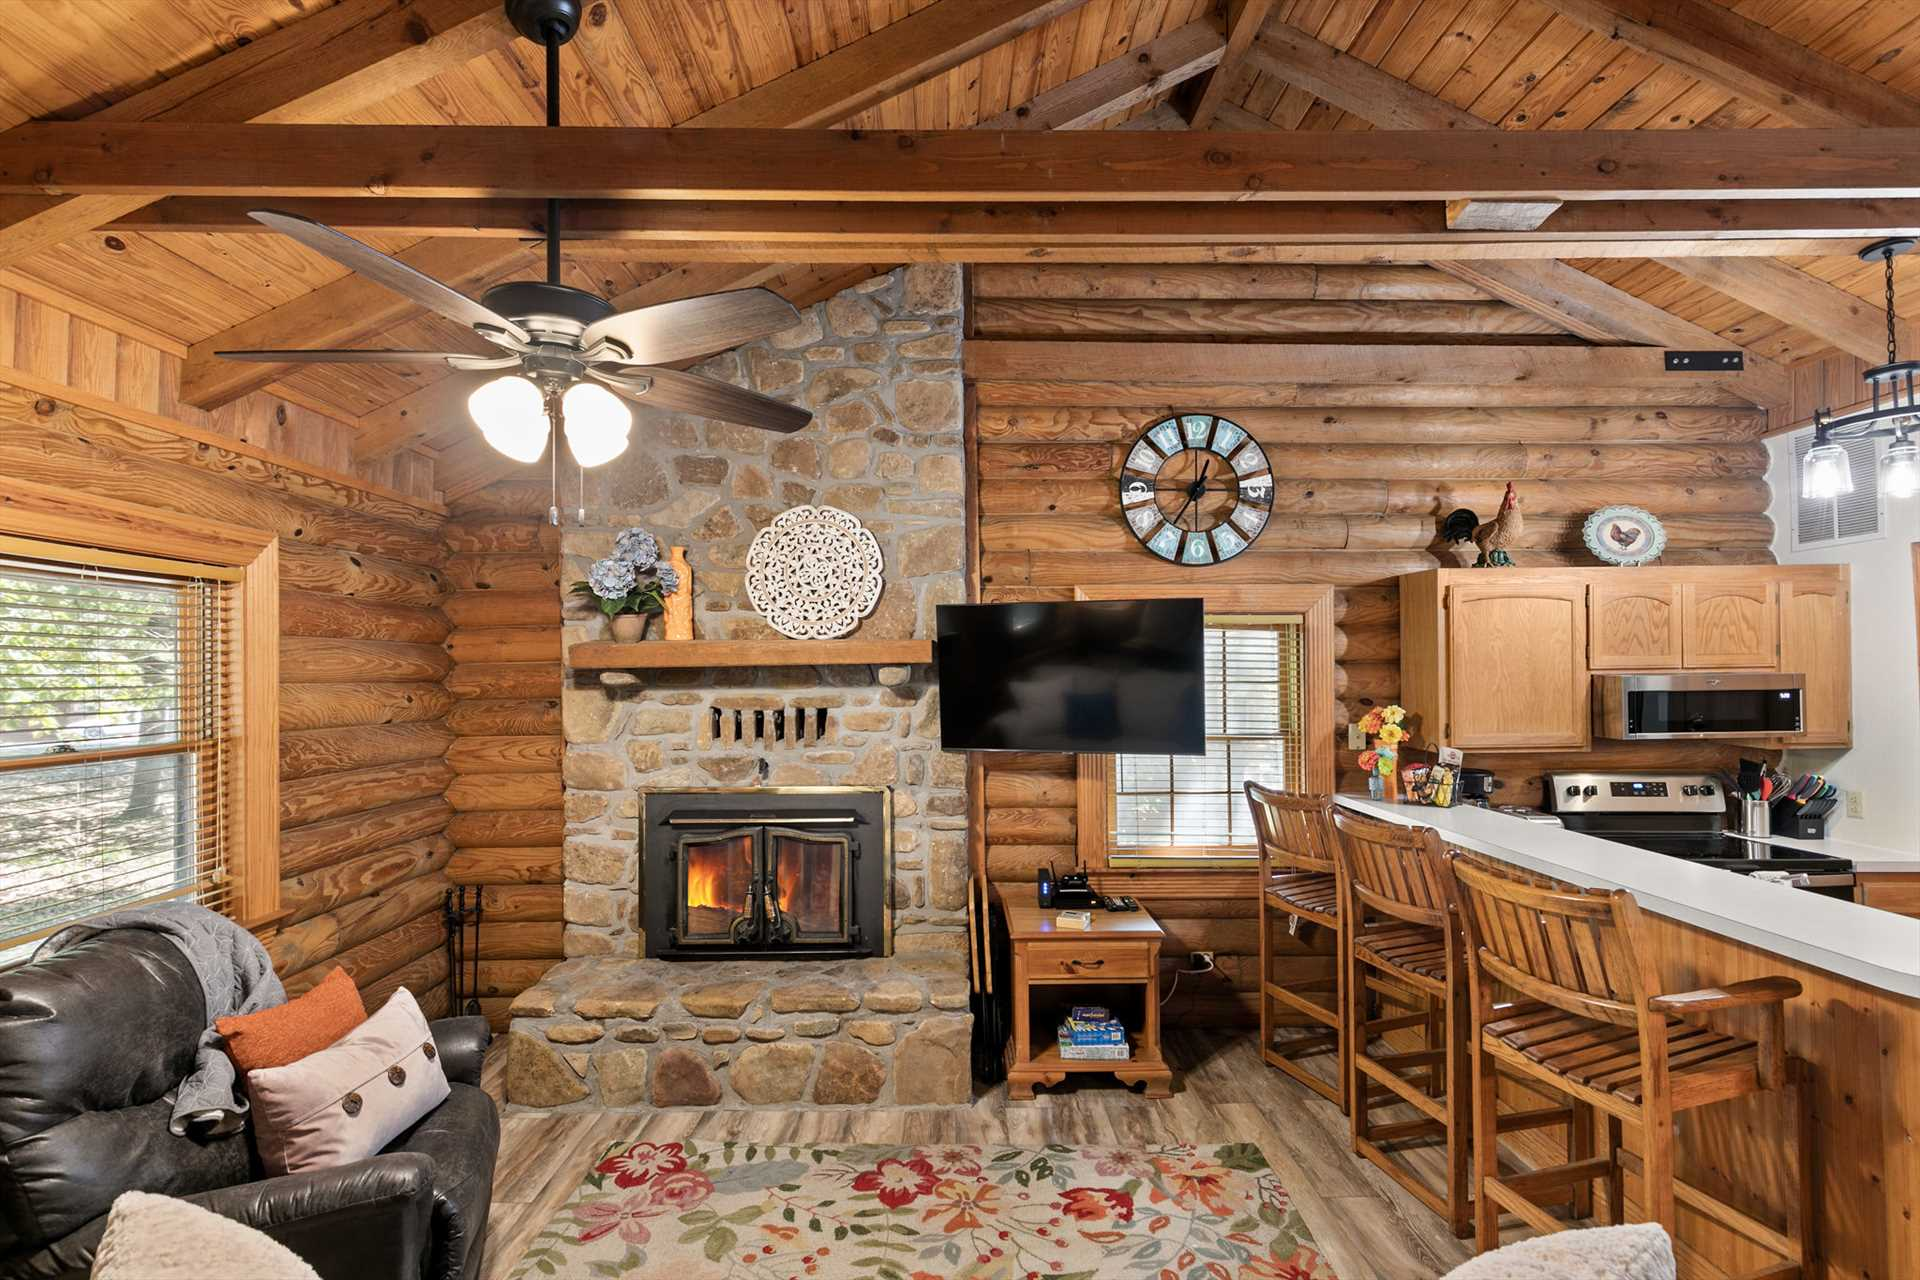 The wood burning fireplace is a highlight of the cabin.